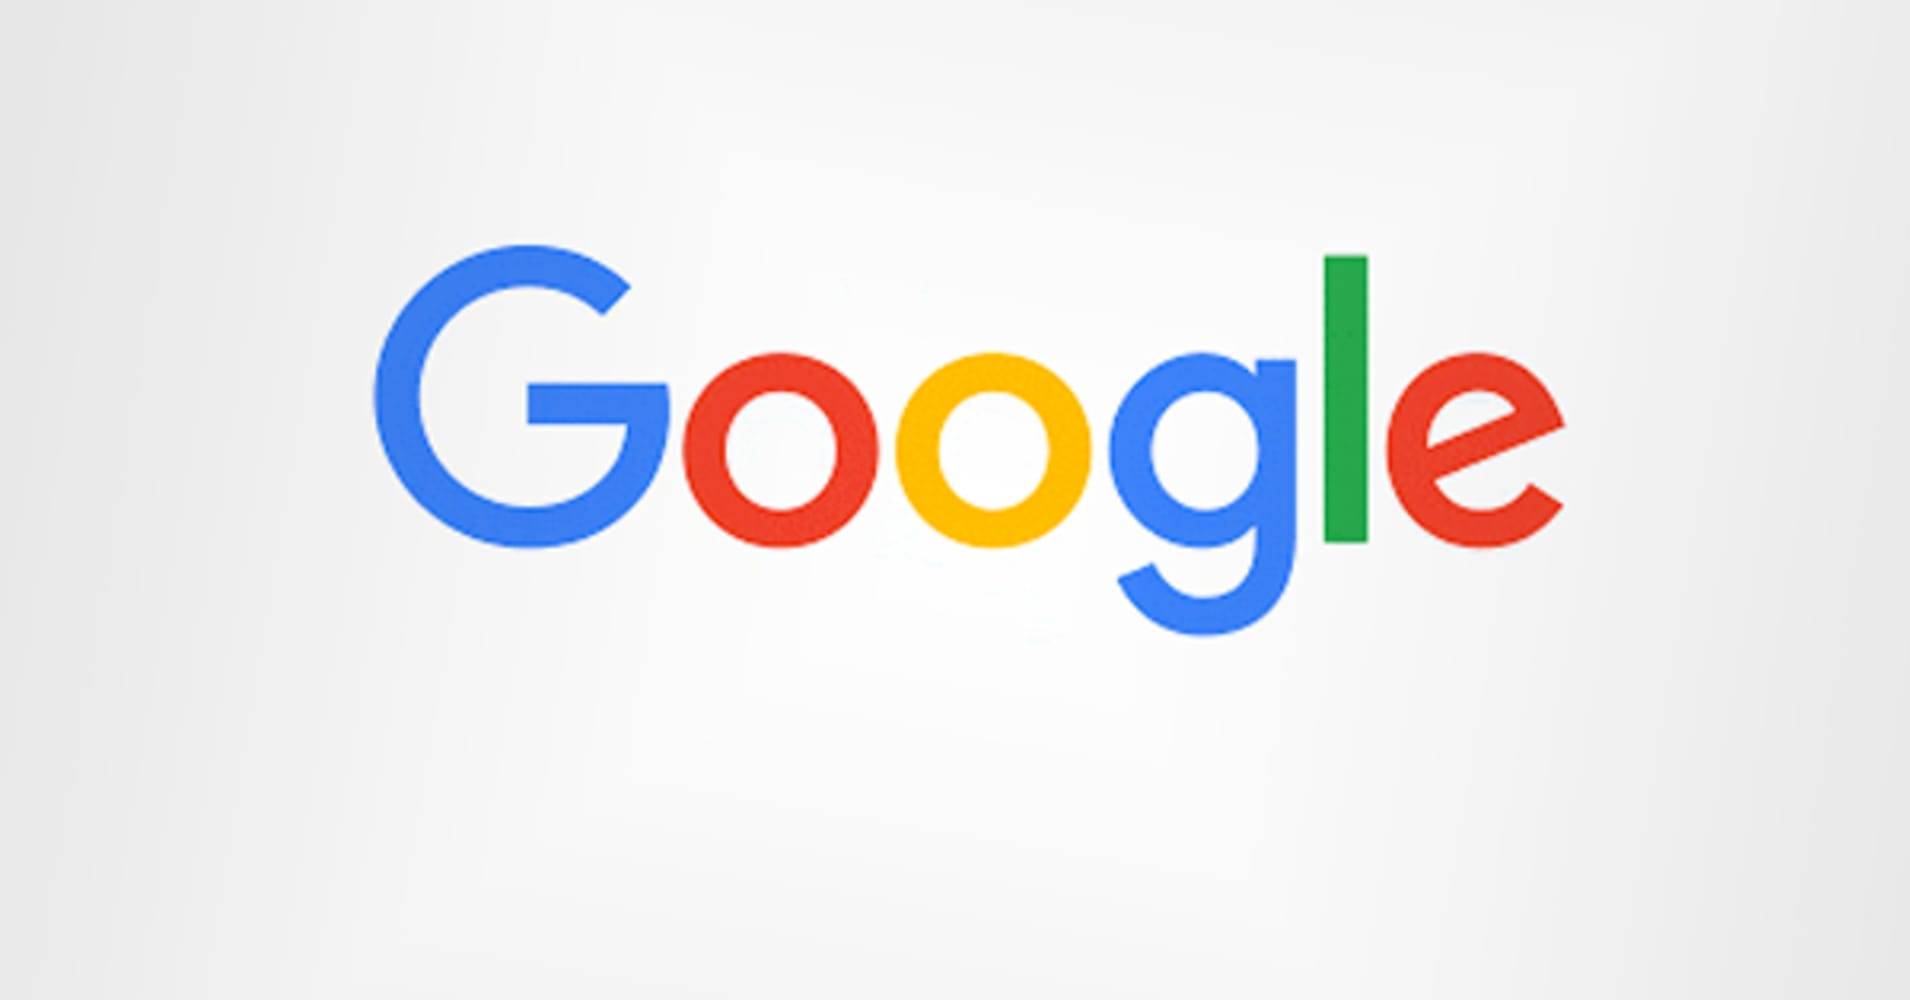 Google investment in riple cryptocurrency